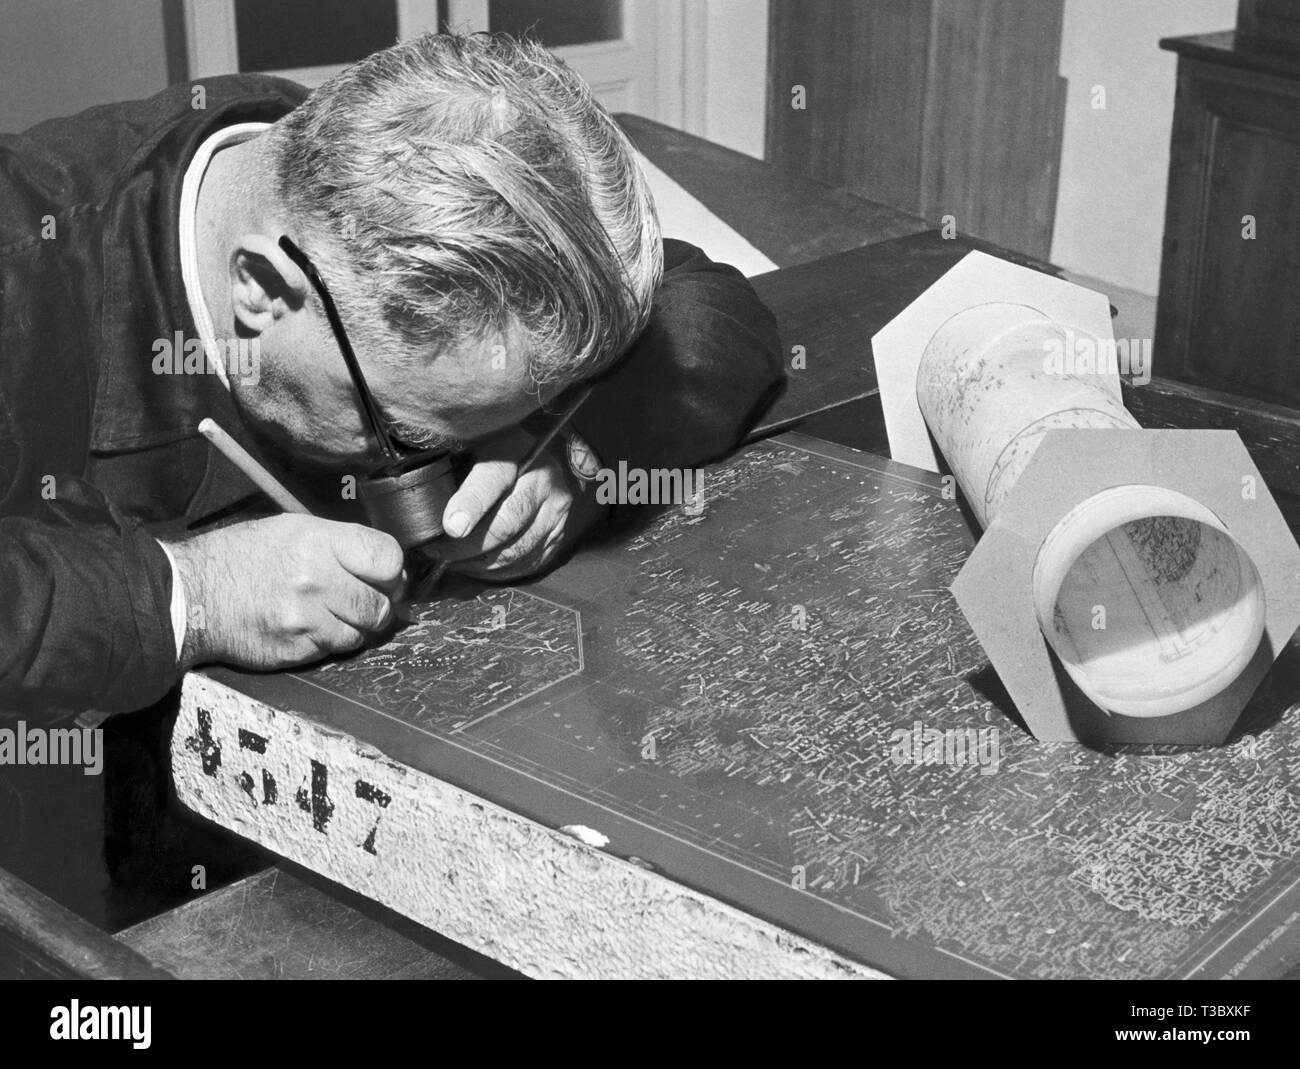 cartographic office, engraver, 1954 - Stock Image